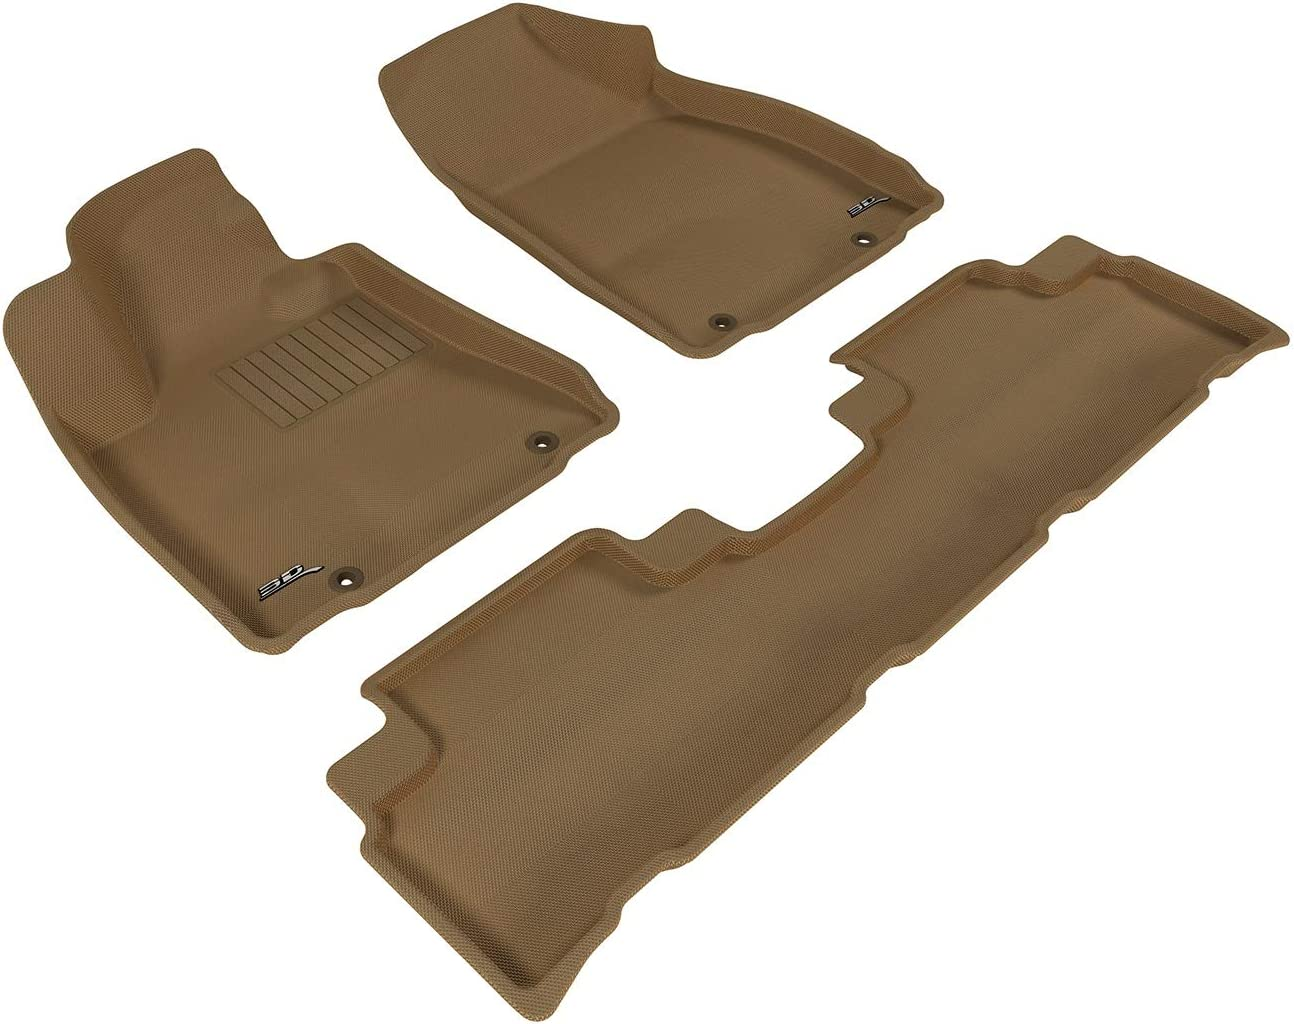 3D MAXpider Complete Set Custom Fit All-Weather Floor Mat for Select Lexus RX350//450H Models Kagu Rubber Tan